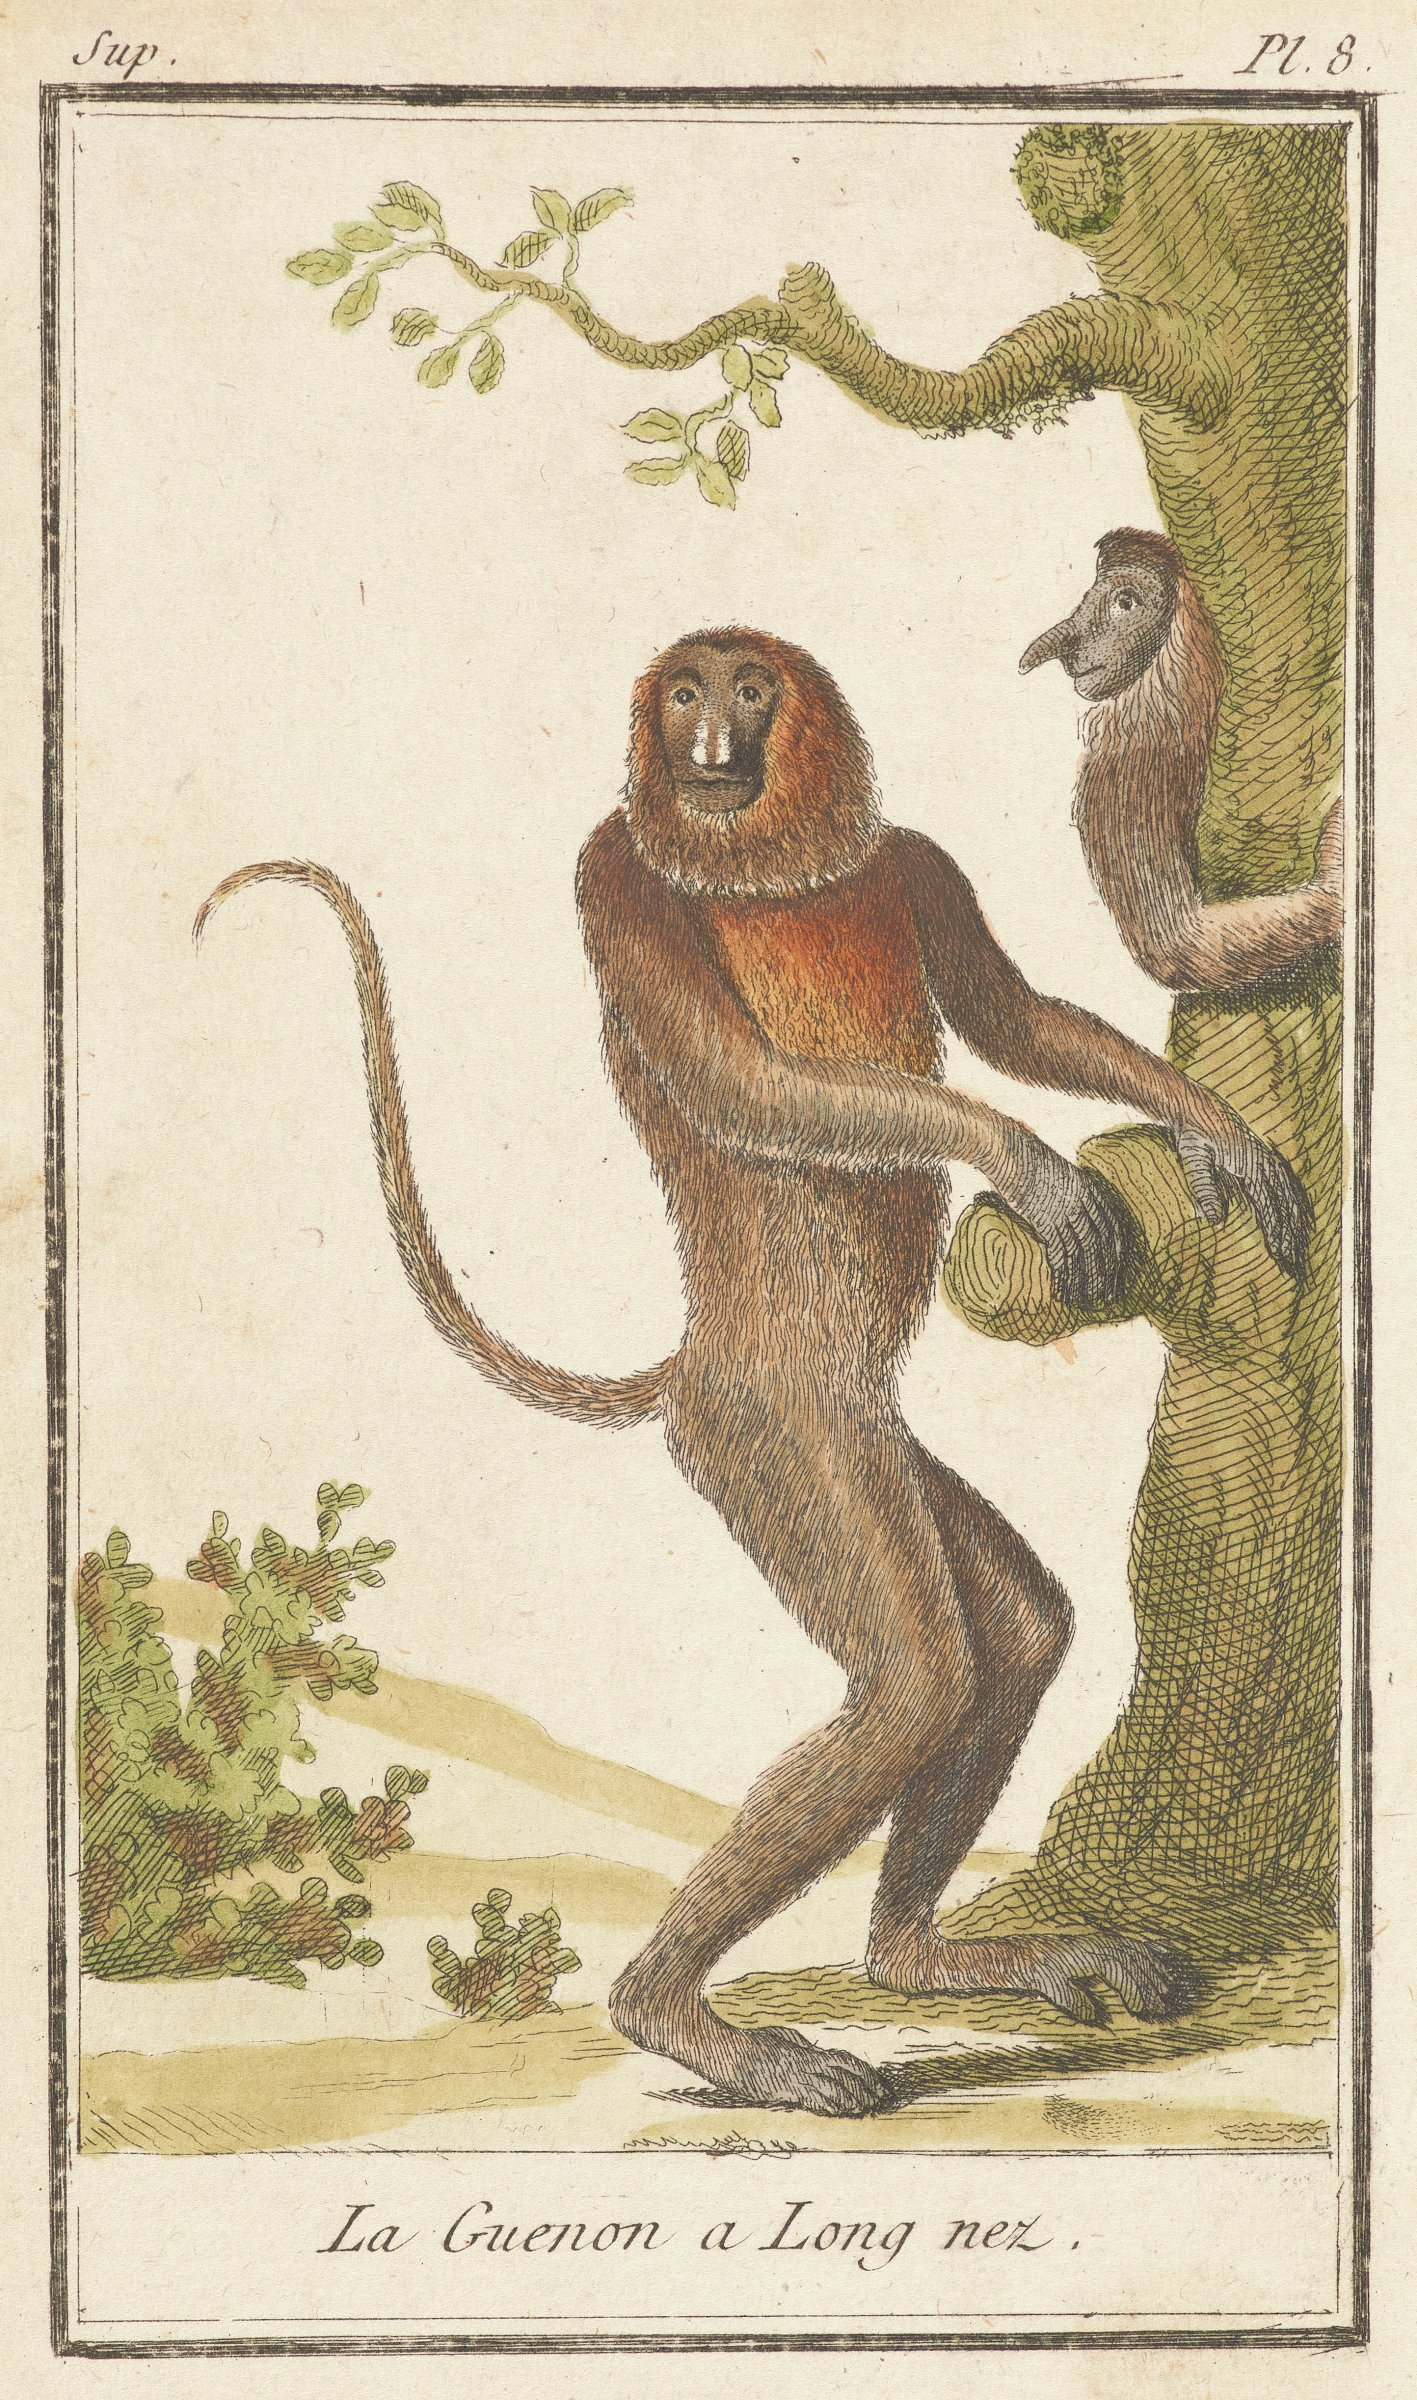 A monkey stands upright near a tree facing the right with head turned to the left. Another monkey is seen in profile holding onto the tree trunk.